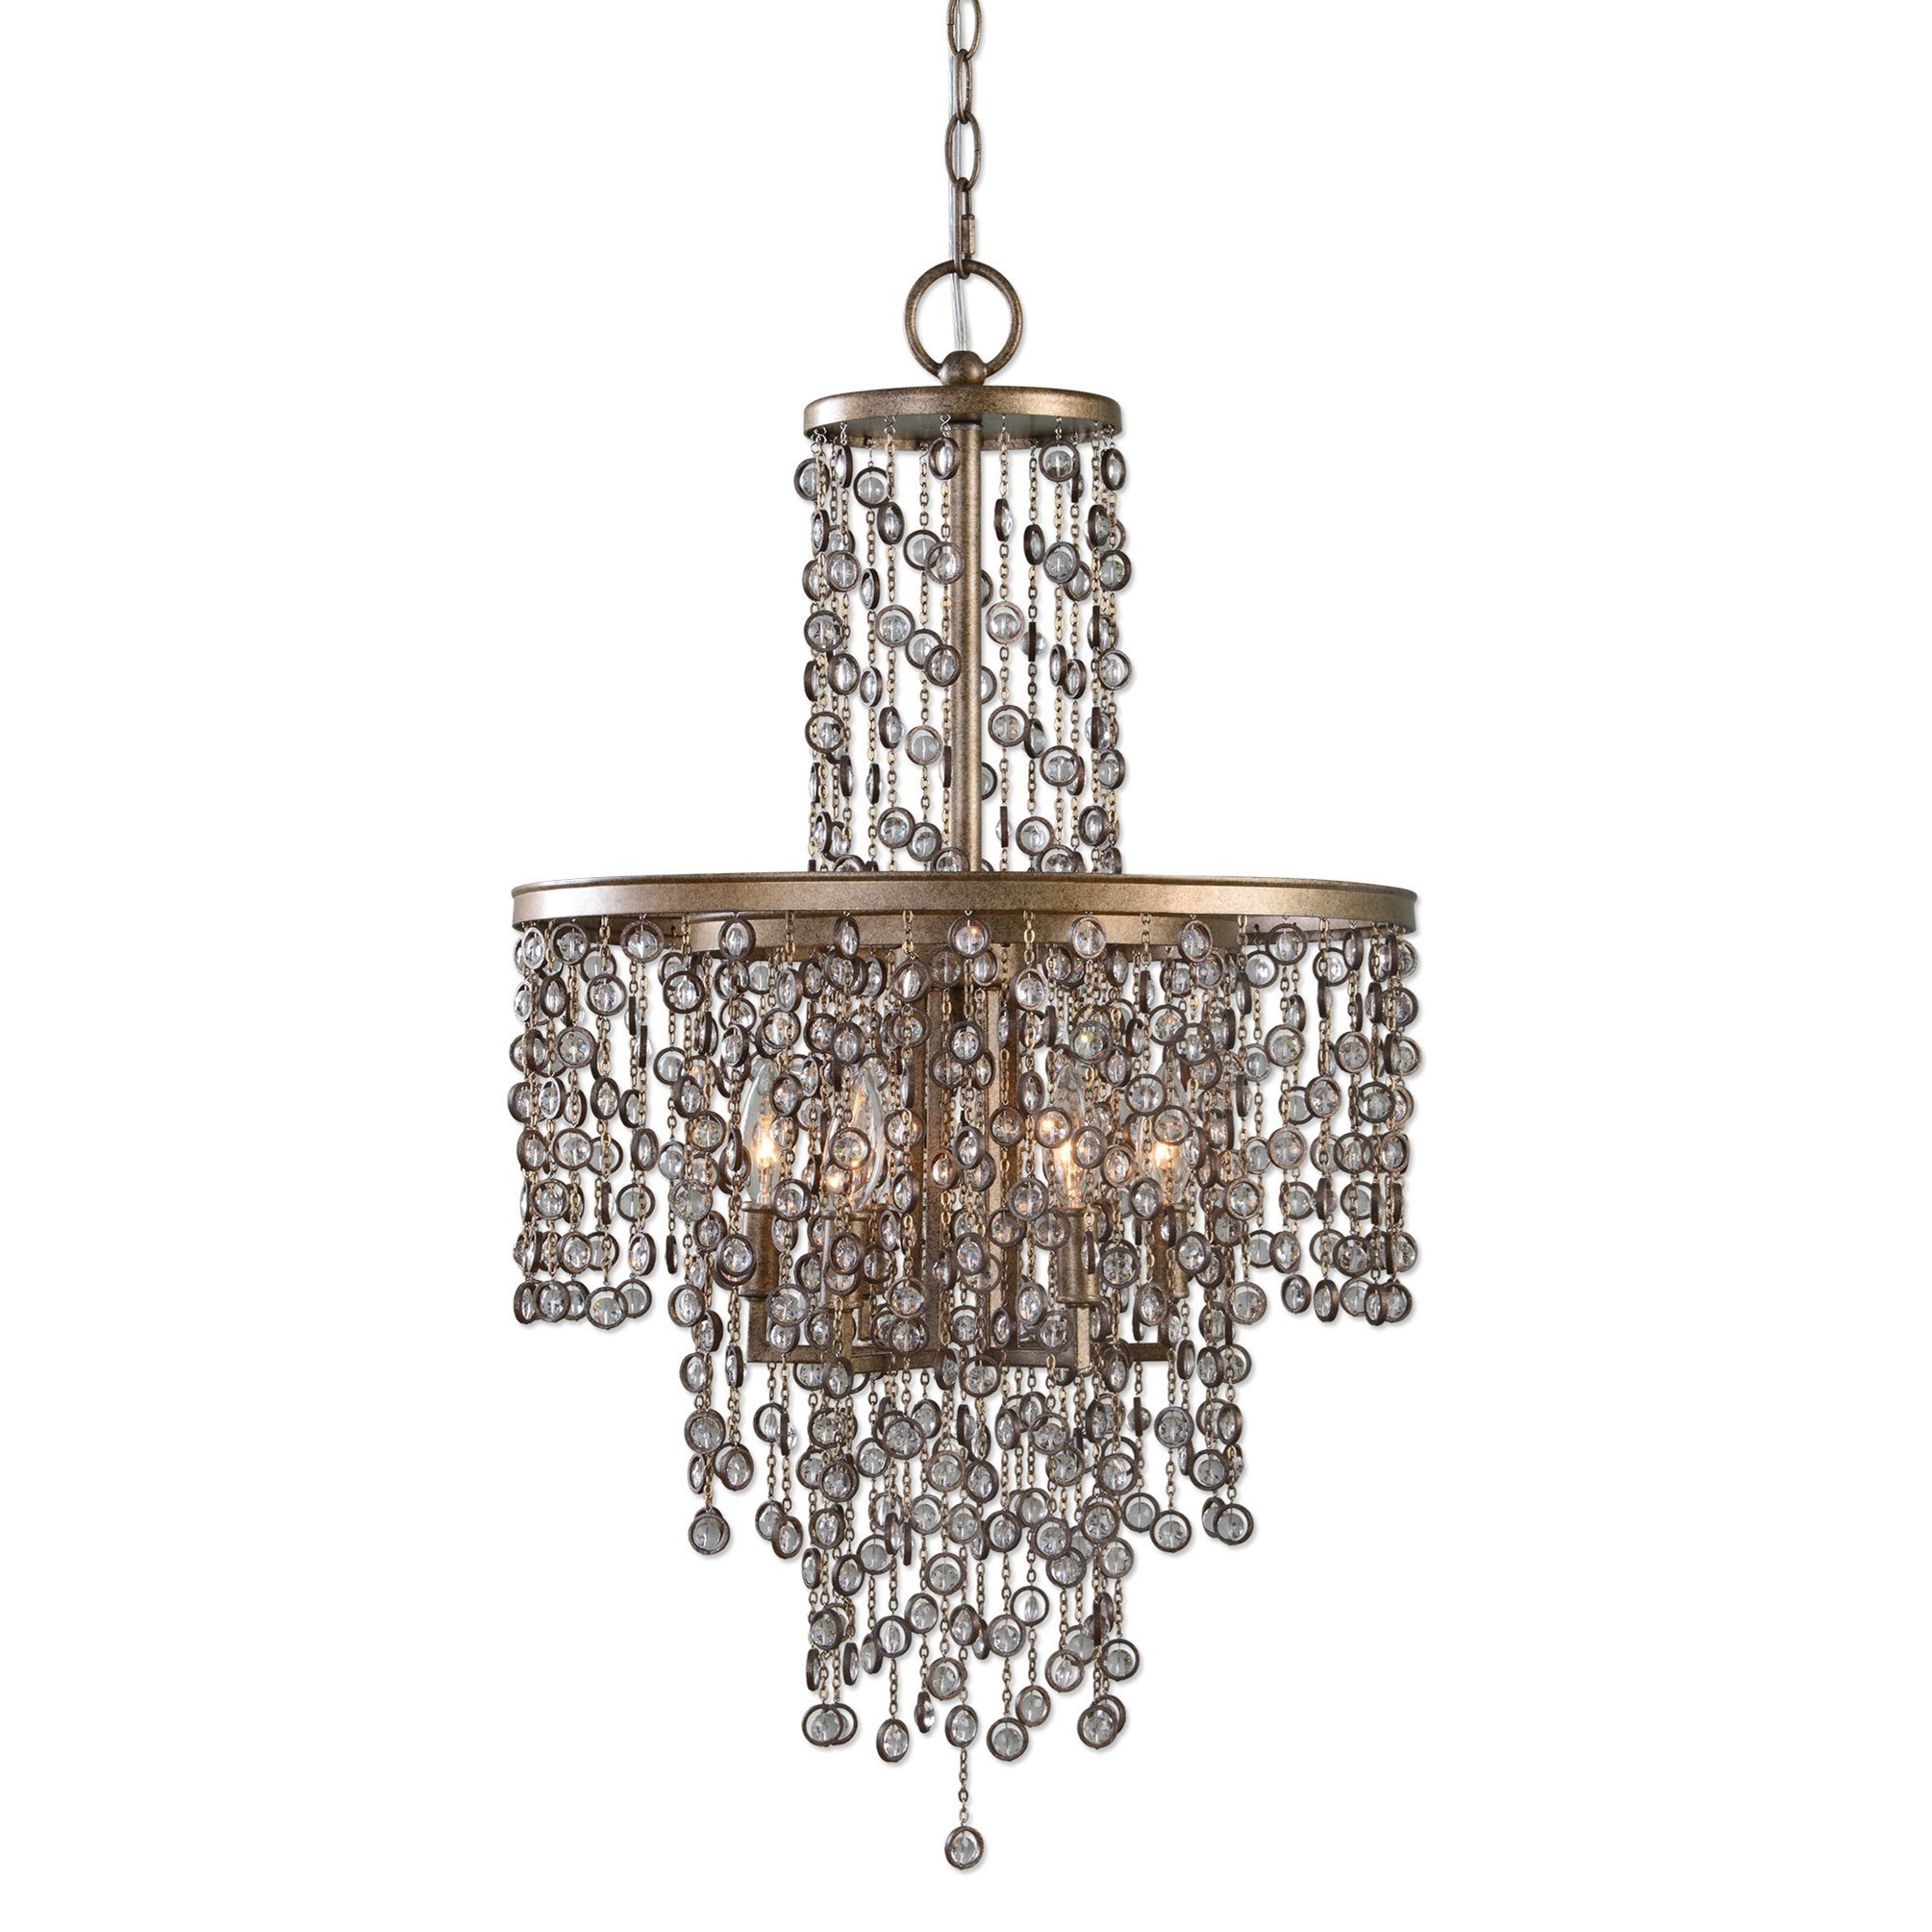 Uttermost Lighting Fixtures Valka 6 Light Crystal Chandelier - Item Number: 21288